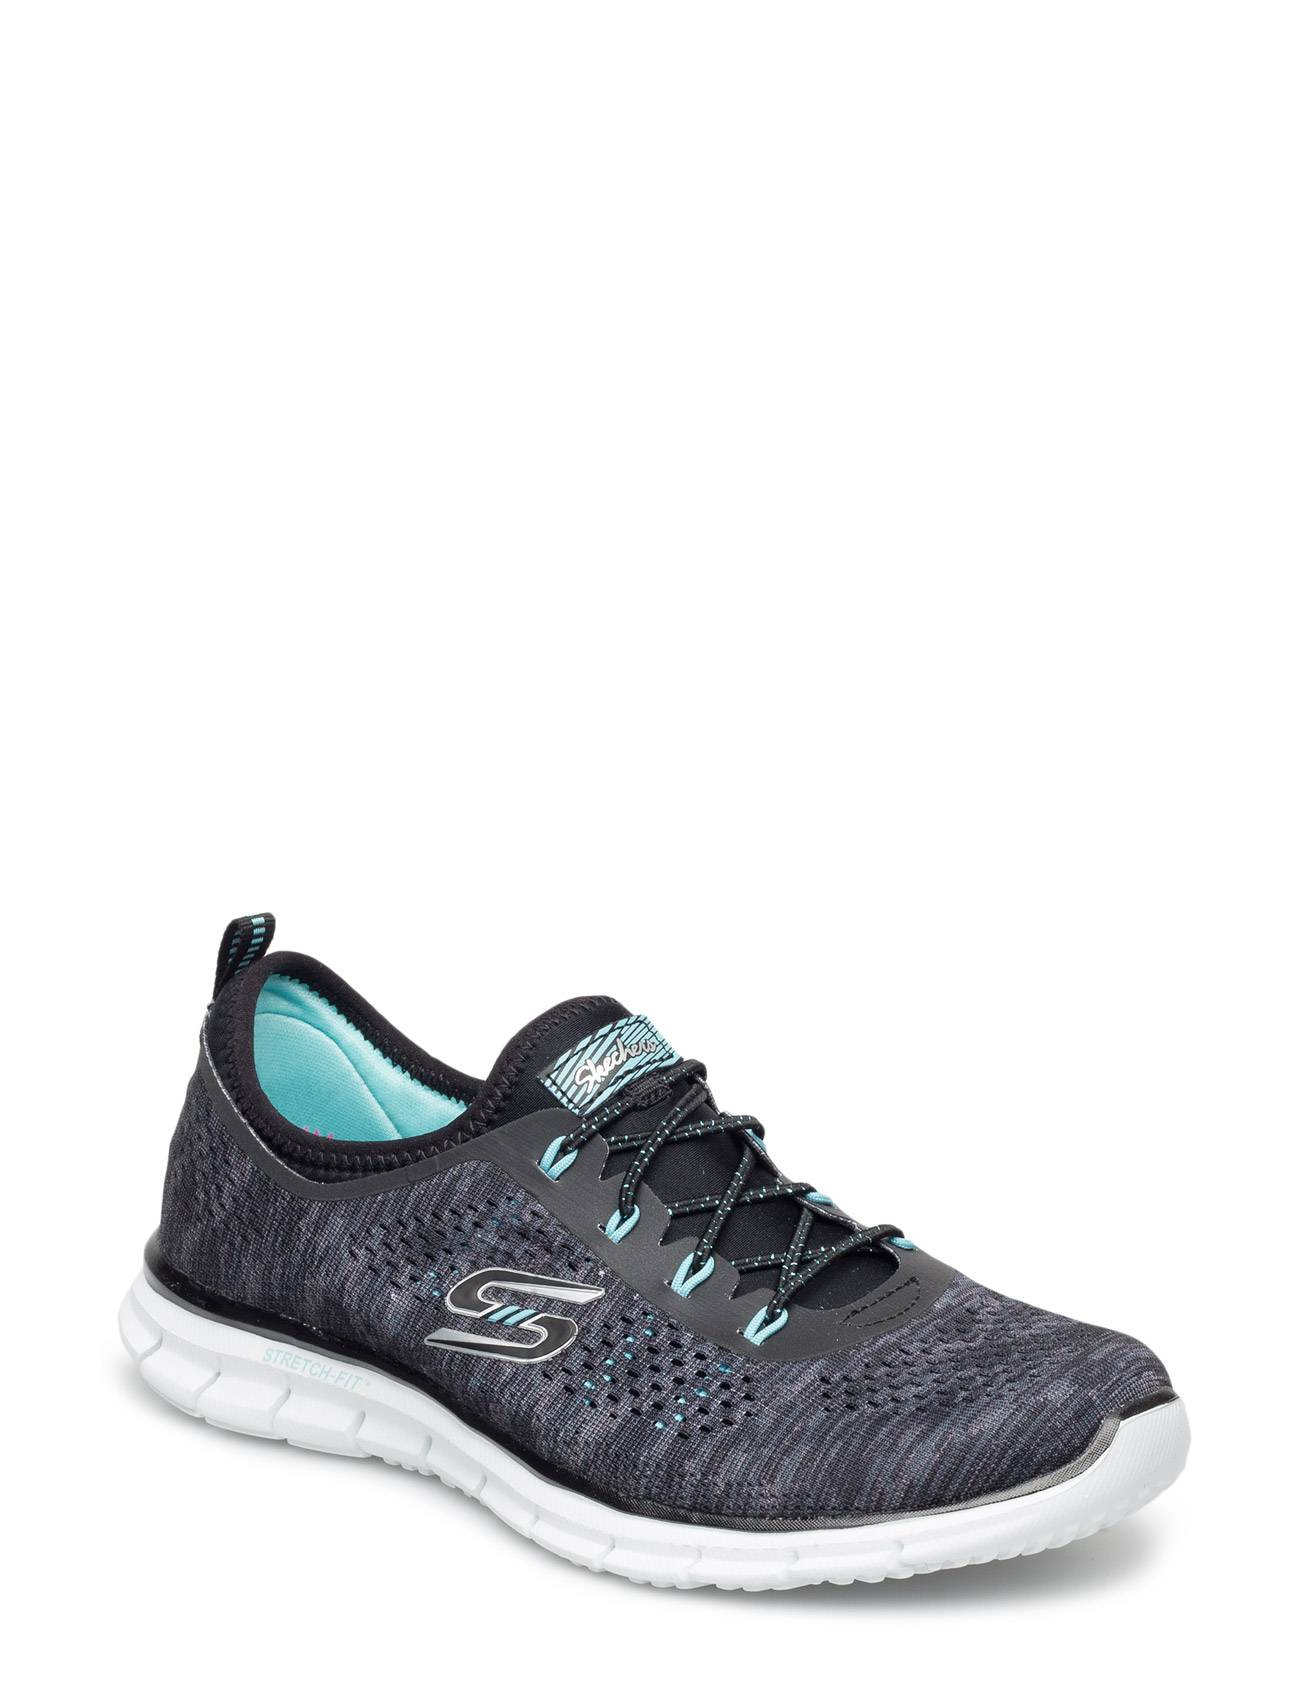 Skechers Womans Stretch Fit: Glider- Deep Space